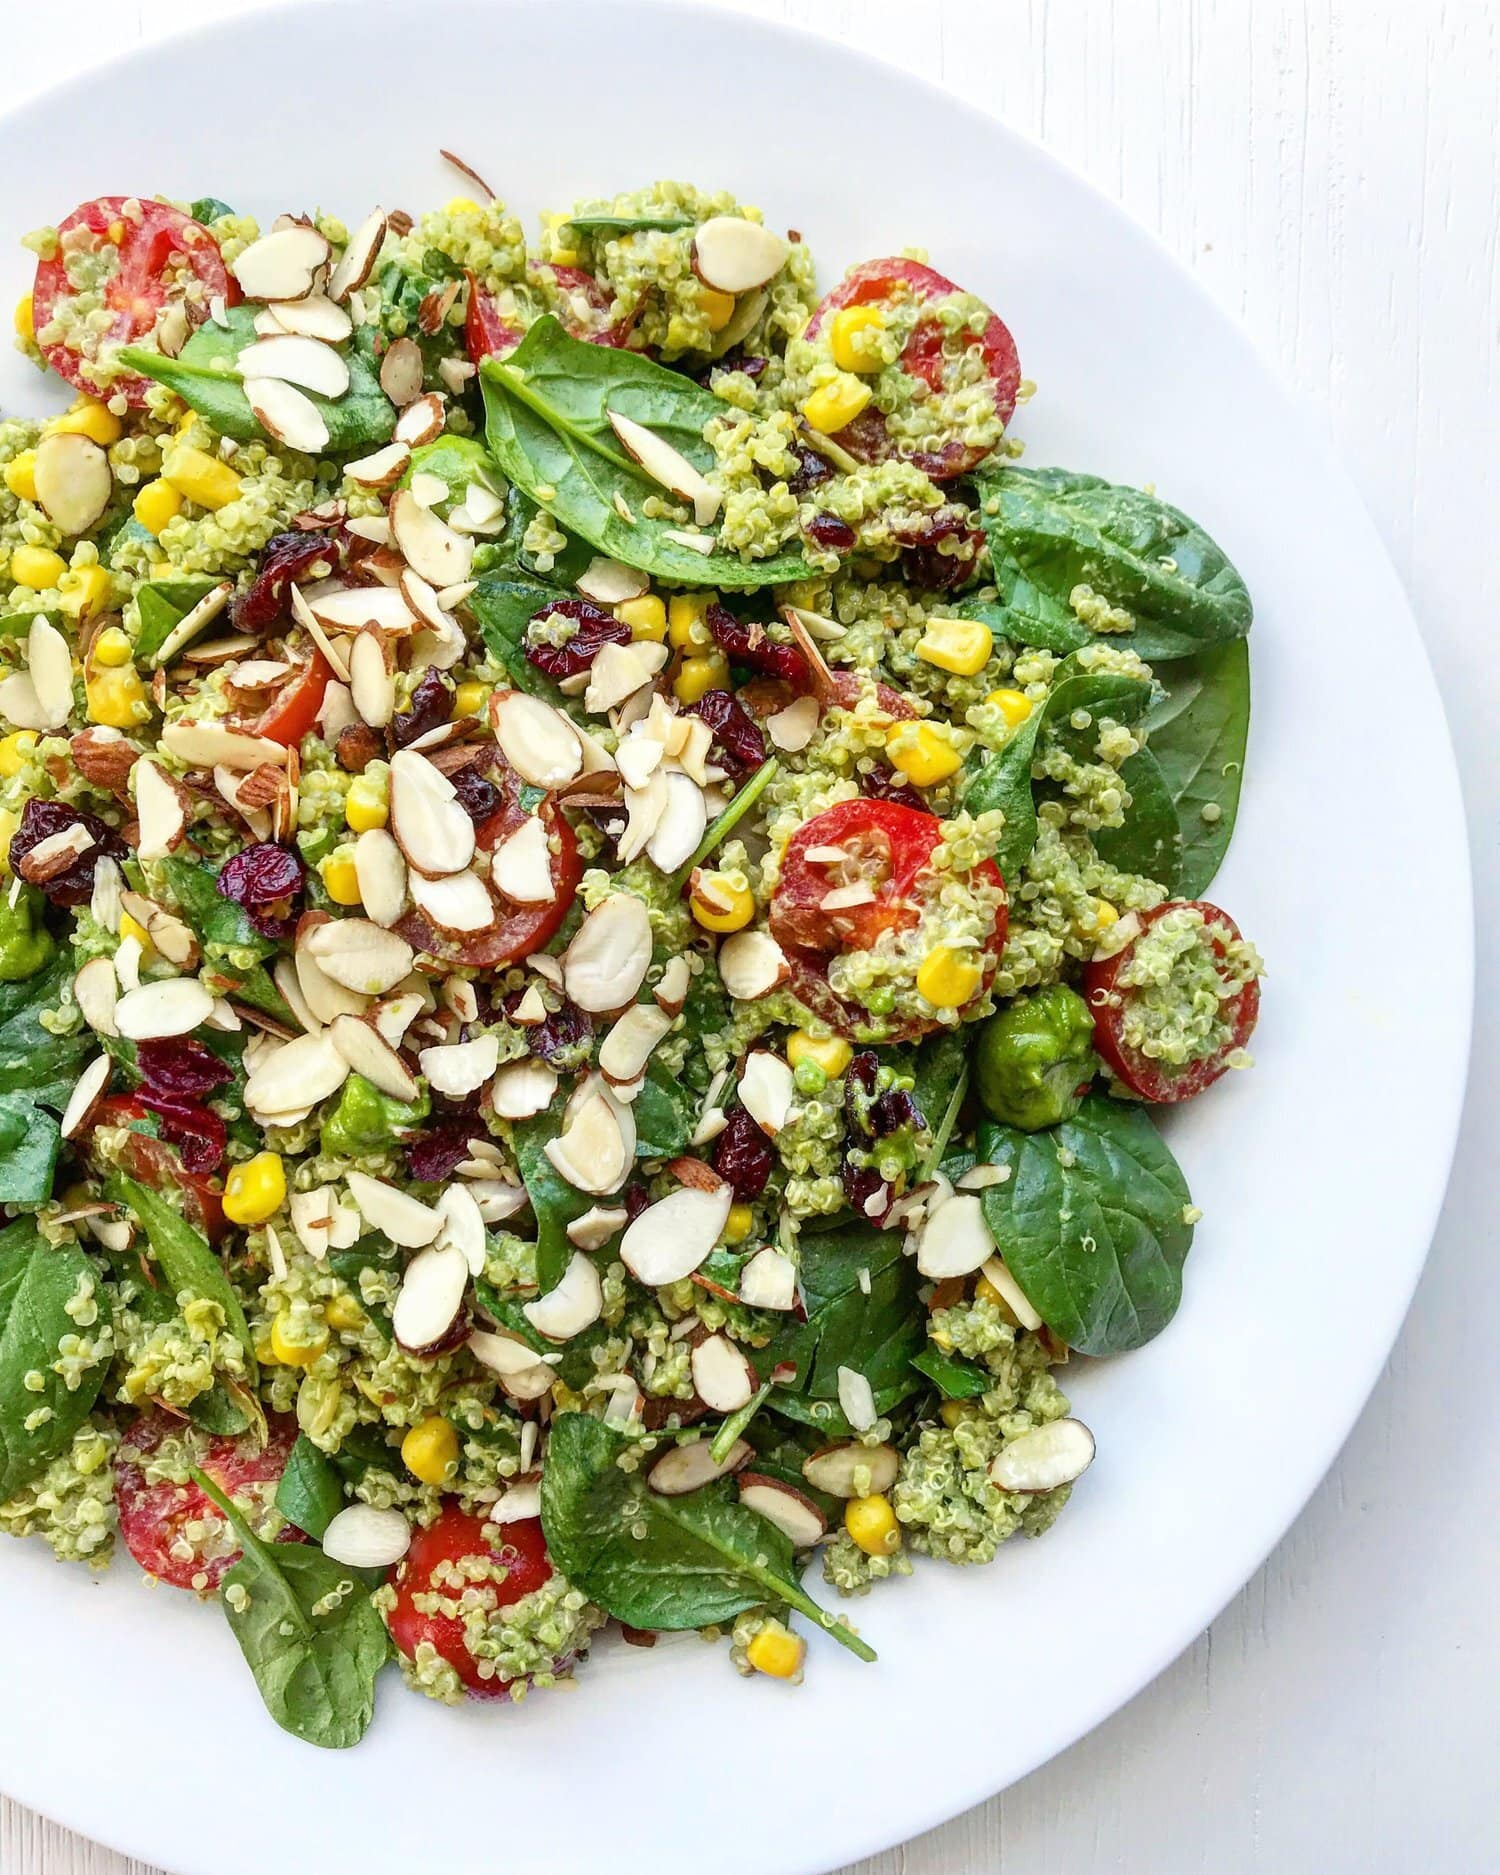 A large plate of cranberry pesto salad with flaked almonds.